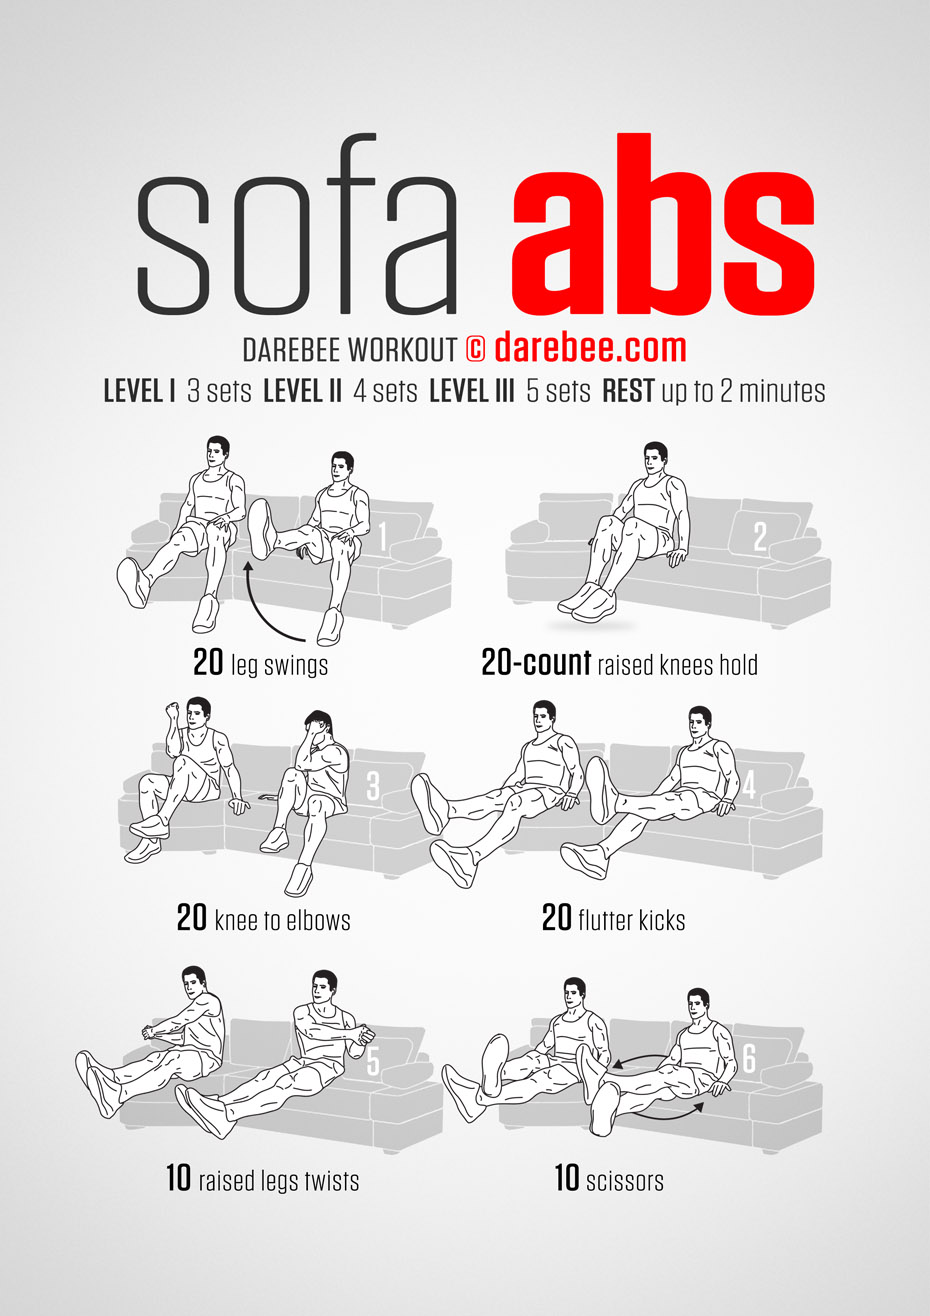 Here's How Sitting on Your Couch Can Give You Abs - Infographic